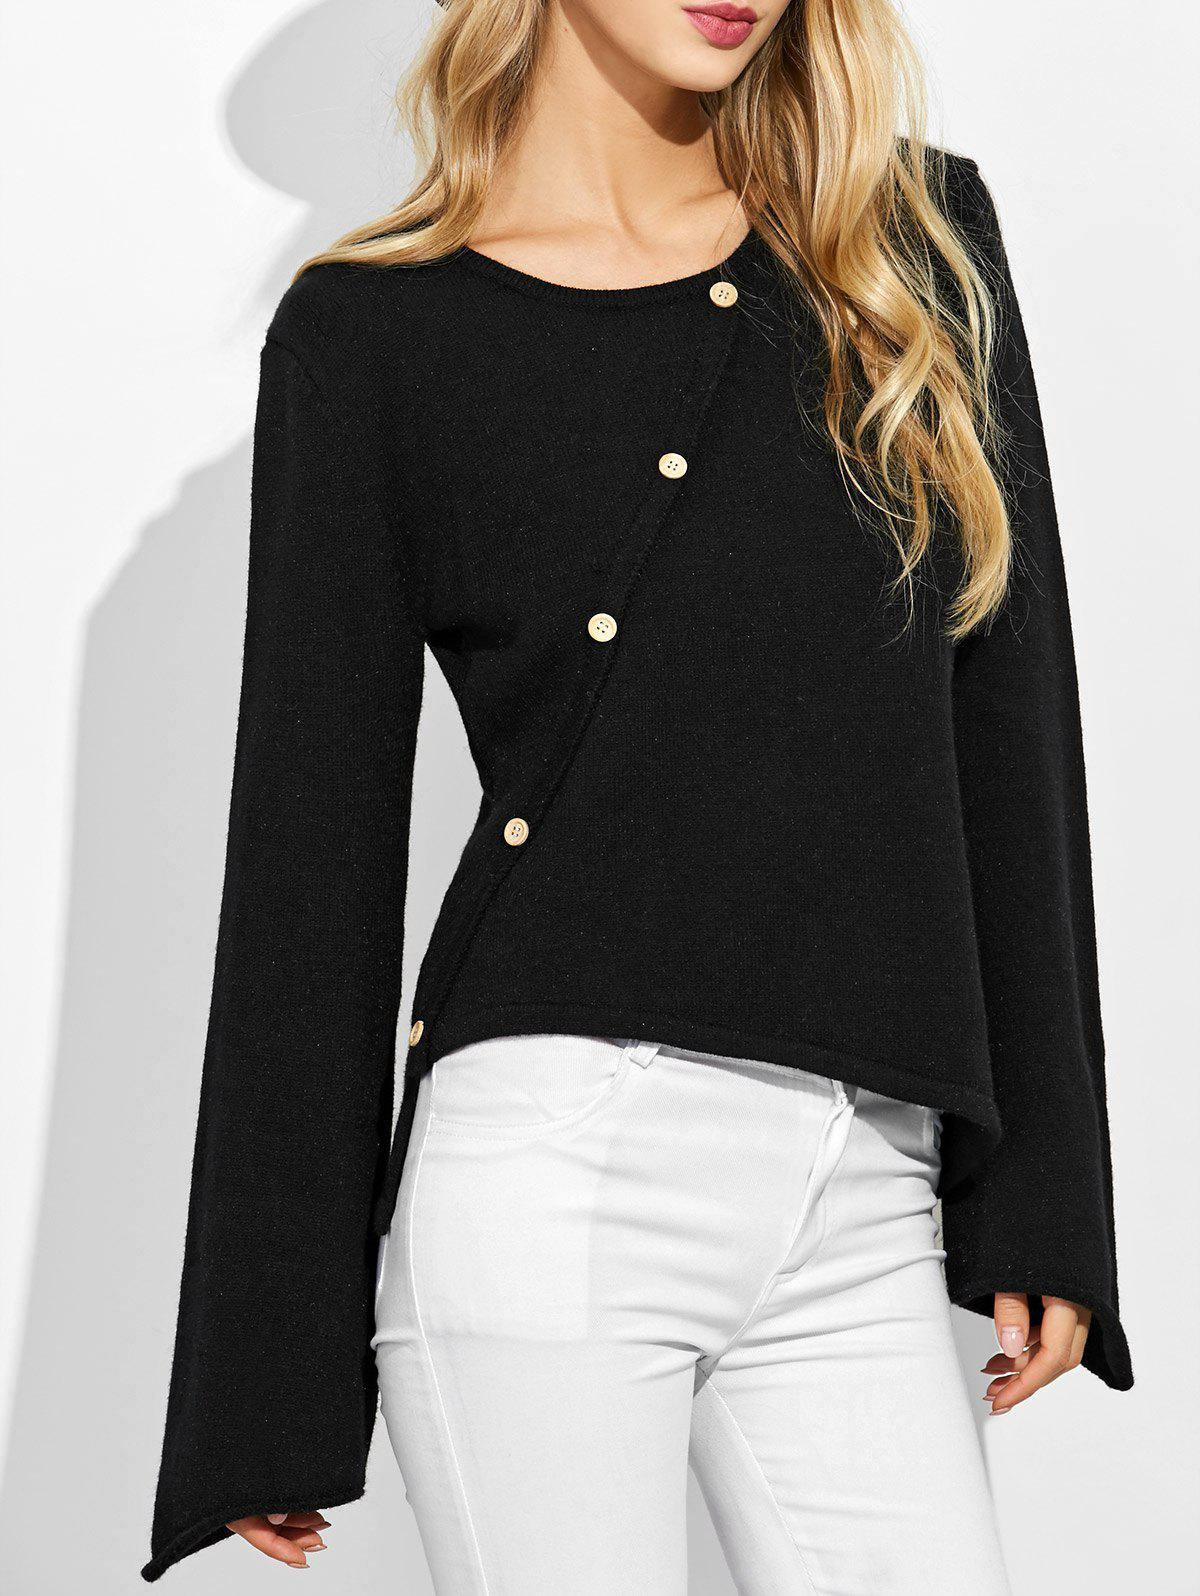 Bell Sleeves High Low KnitwearWOMEN<br><br>Size: XL; Color: BLACK; Type: Pullovers; Material: Acrylic,Cotton; Sleeve Length: Full; Collar: Scoop Neck; Style: Fashion; Pattern Type: Solid; Season: Fall,Spring,Winter; Weight: 0.370kg; Package Contents: 1 x Knitwear;